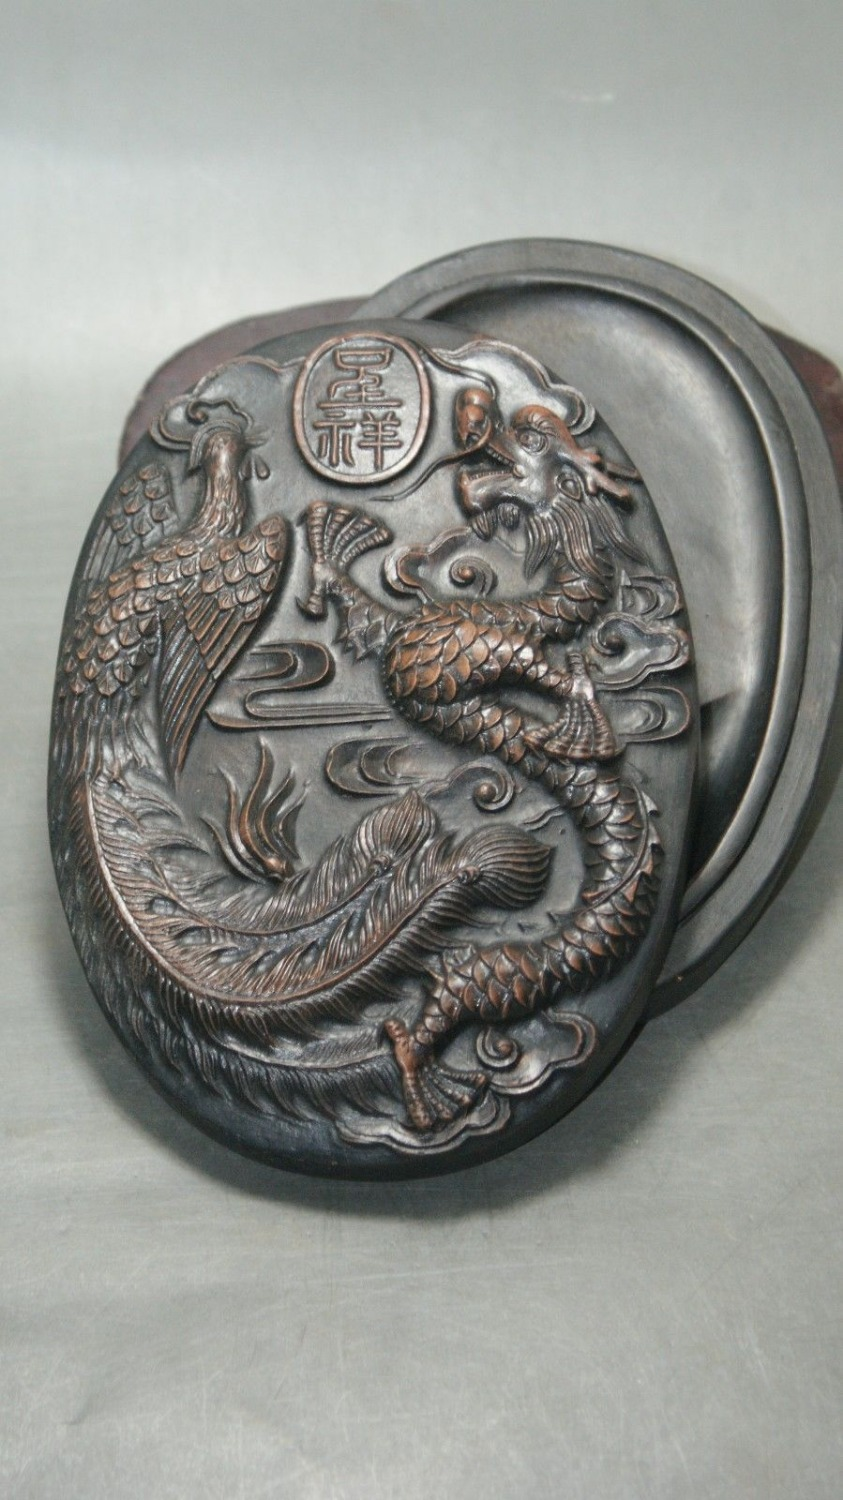 Fine Chinese old wa shi Stone Inkstone with Exquisite carving Dragon Phoenix